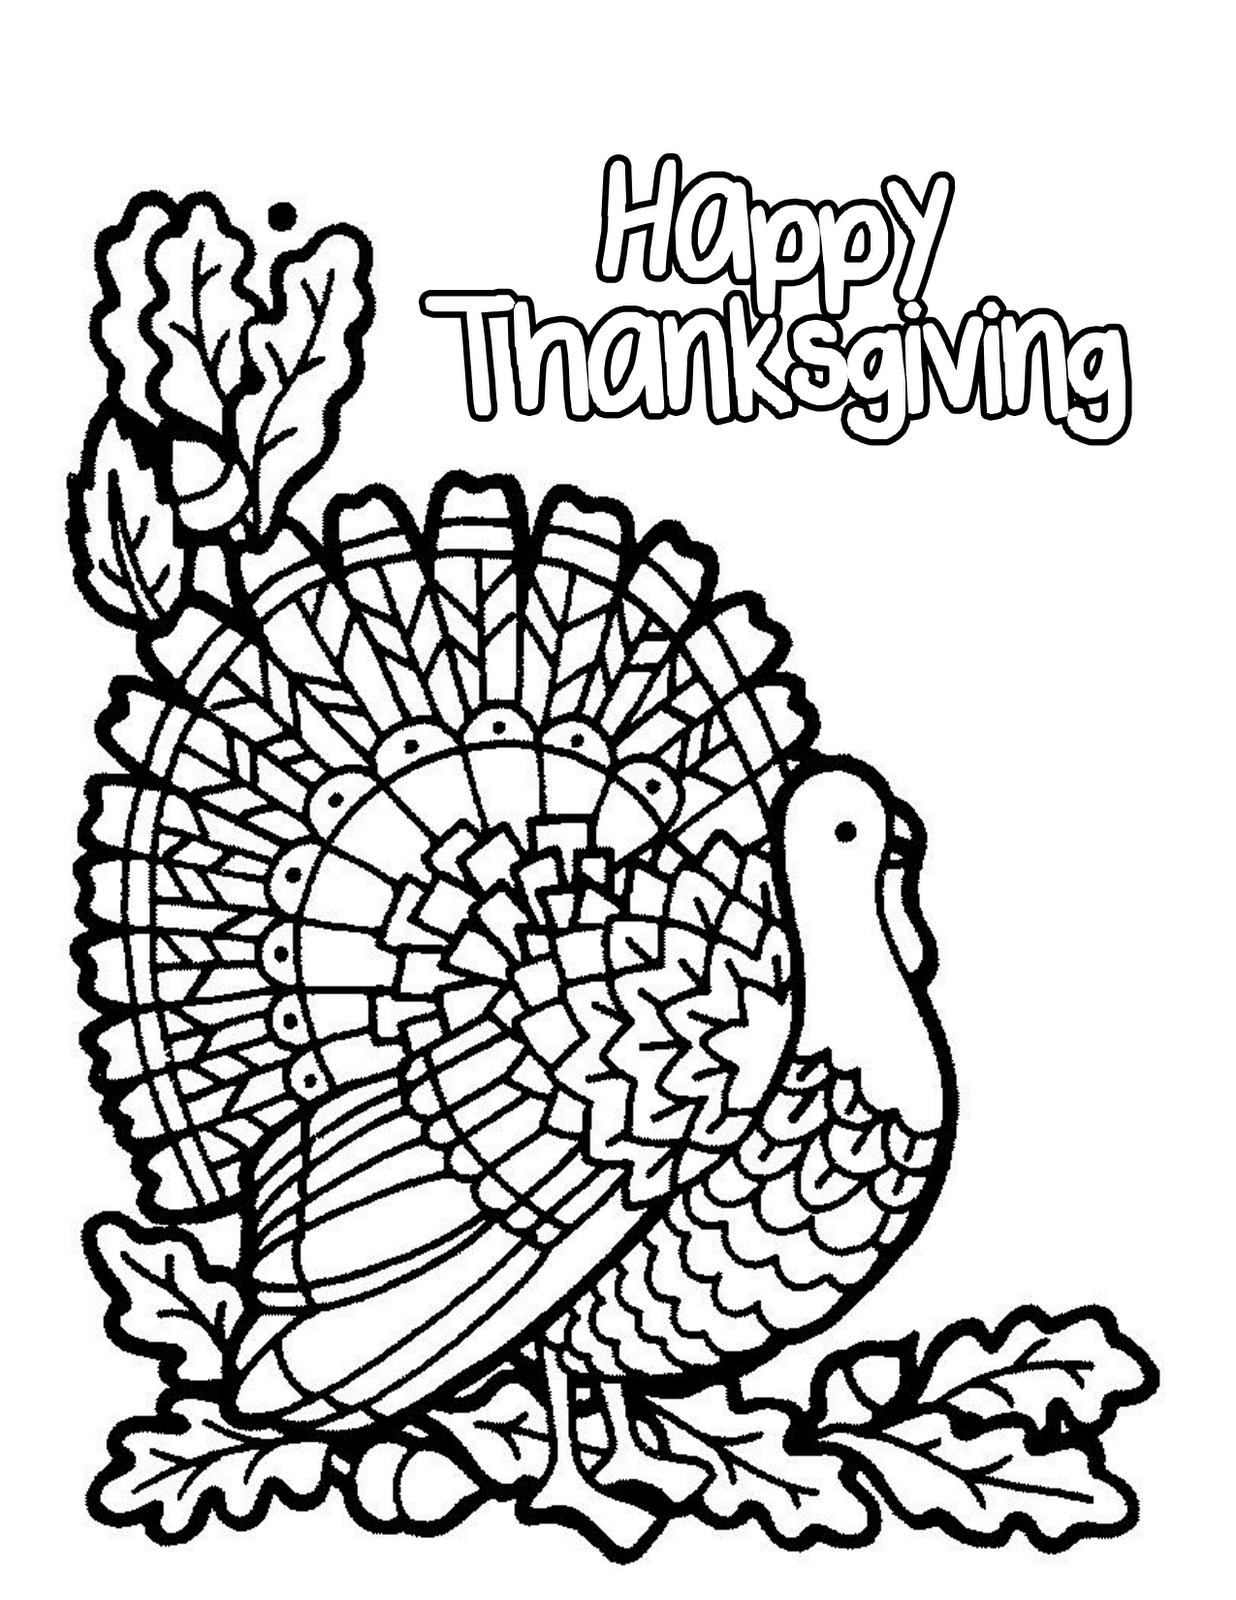 thanks giving coloring pages 40 printable thanksgiving coloring pages for kids coloring giving thanks pages